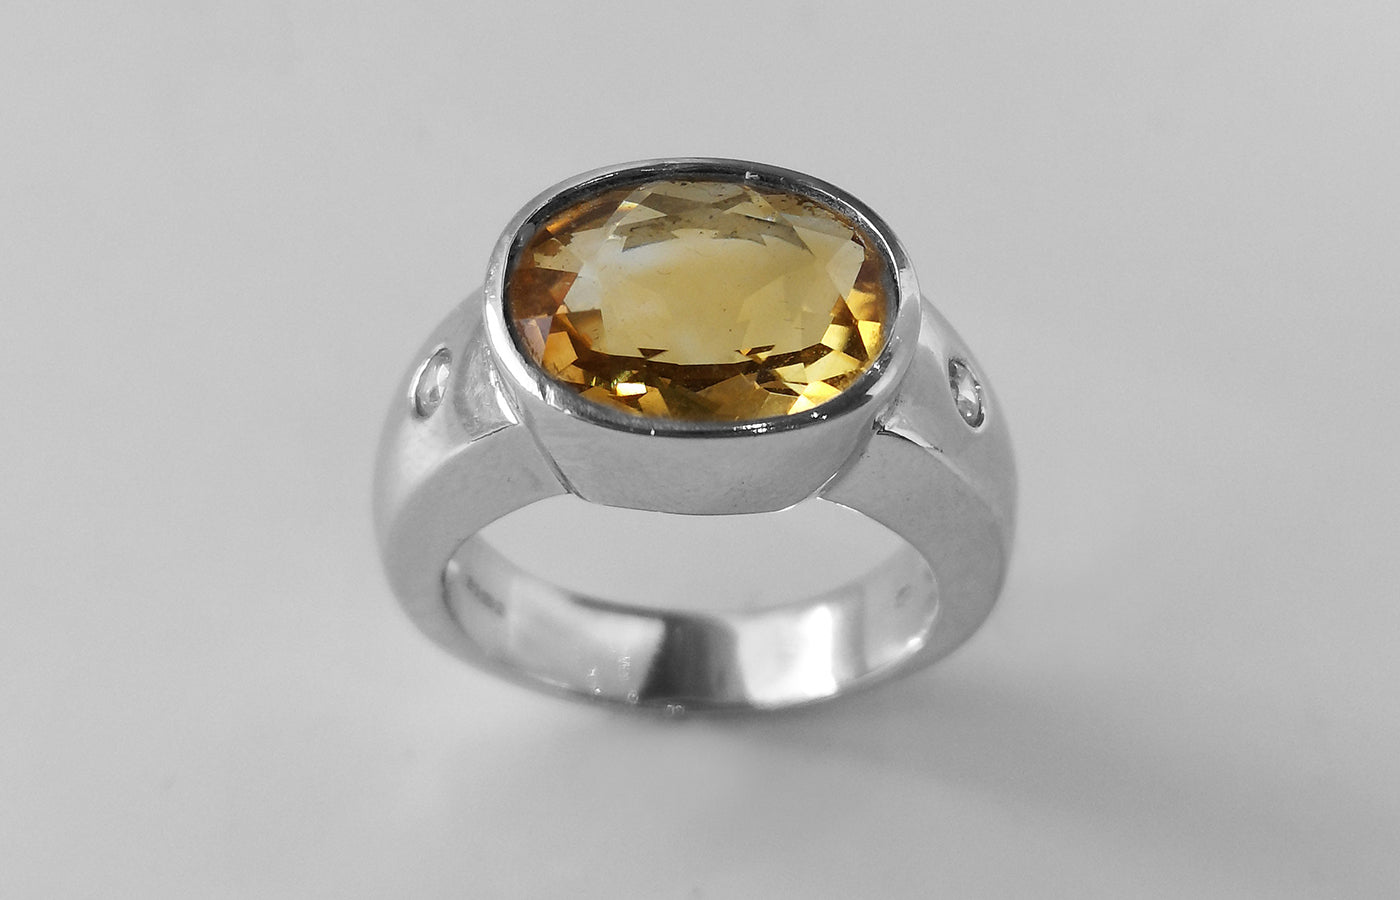 Citrine and Cubic Zirconia Ring 18ct White Gold (10.9g) LR-7549